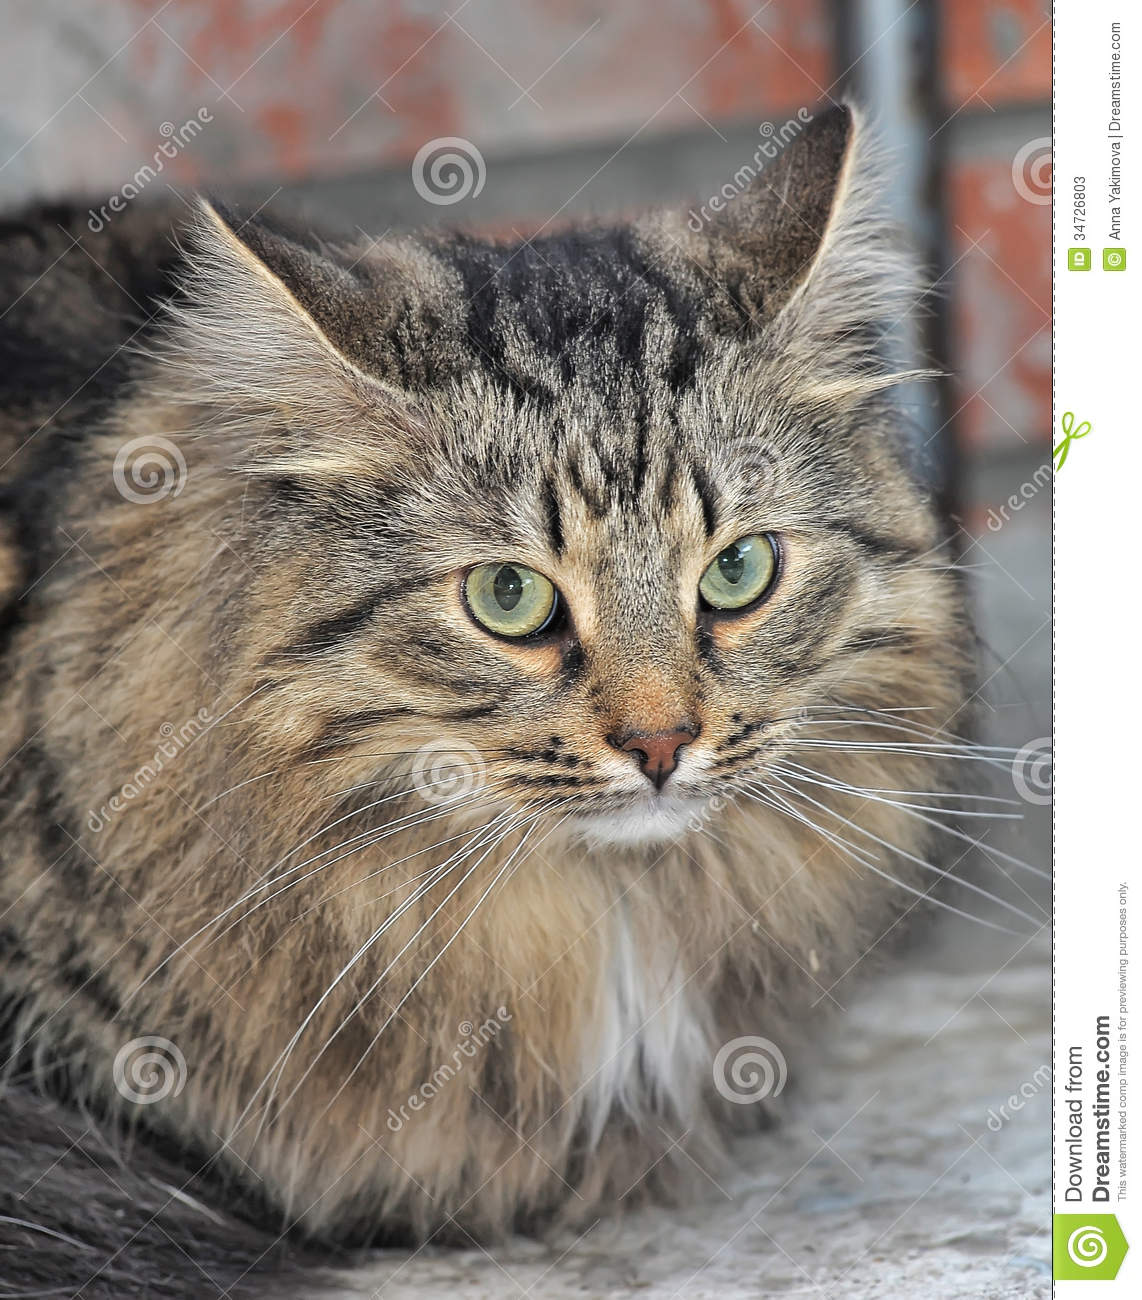 Tabby Norwegian Forest Cat Stock Photos - Image: 34726803 Tabby Norwegian Forest Cat